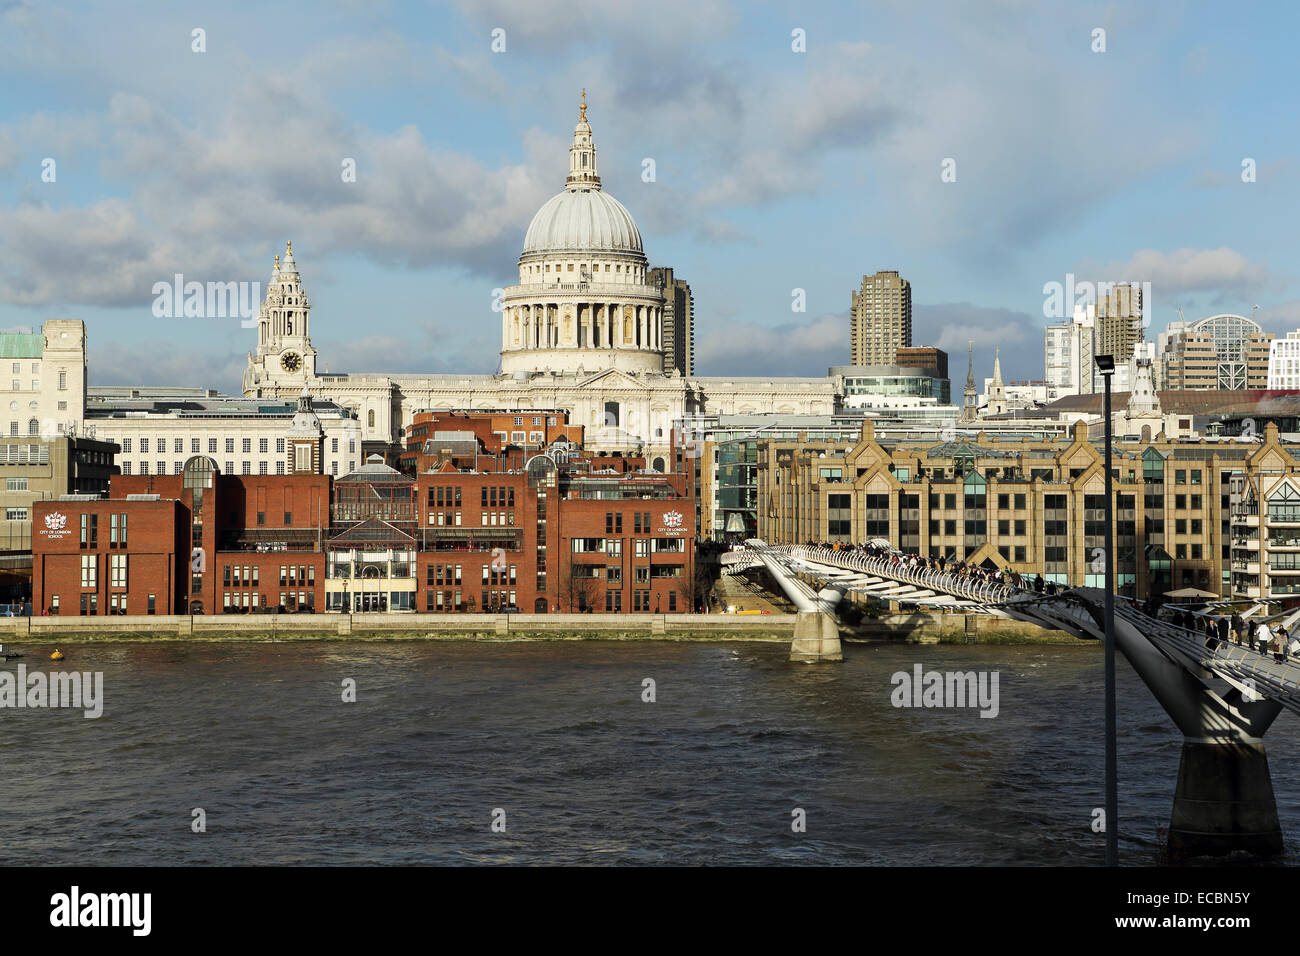 St Paul's Cathedral in London, England. The London Millennium Footbridge (Millennium Bridge) spans the River - Stock Image